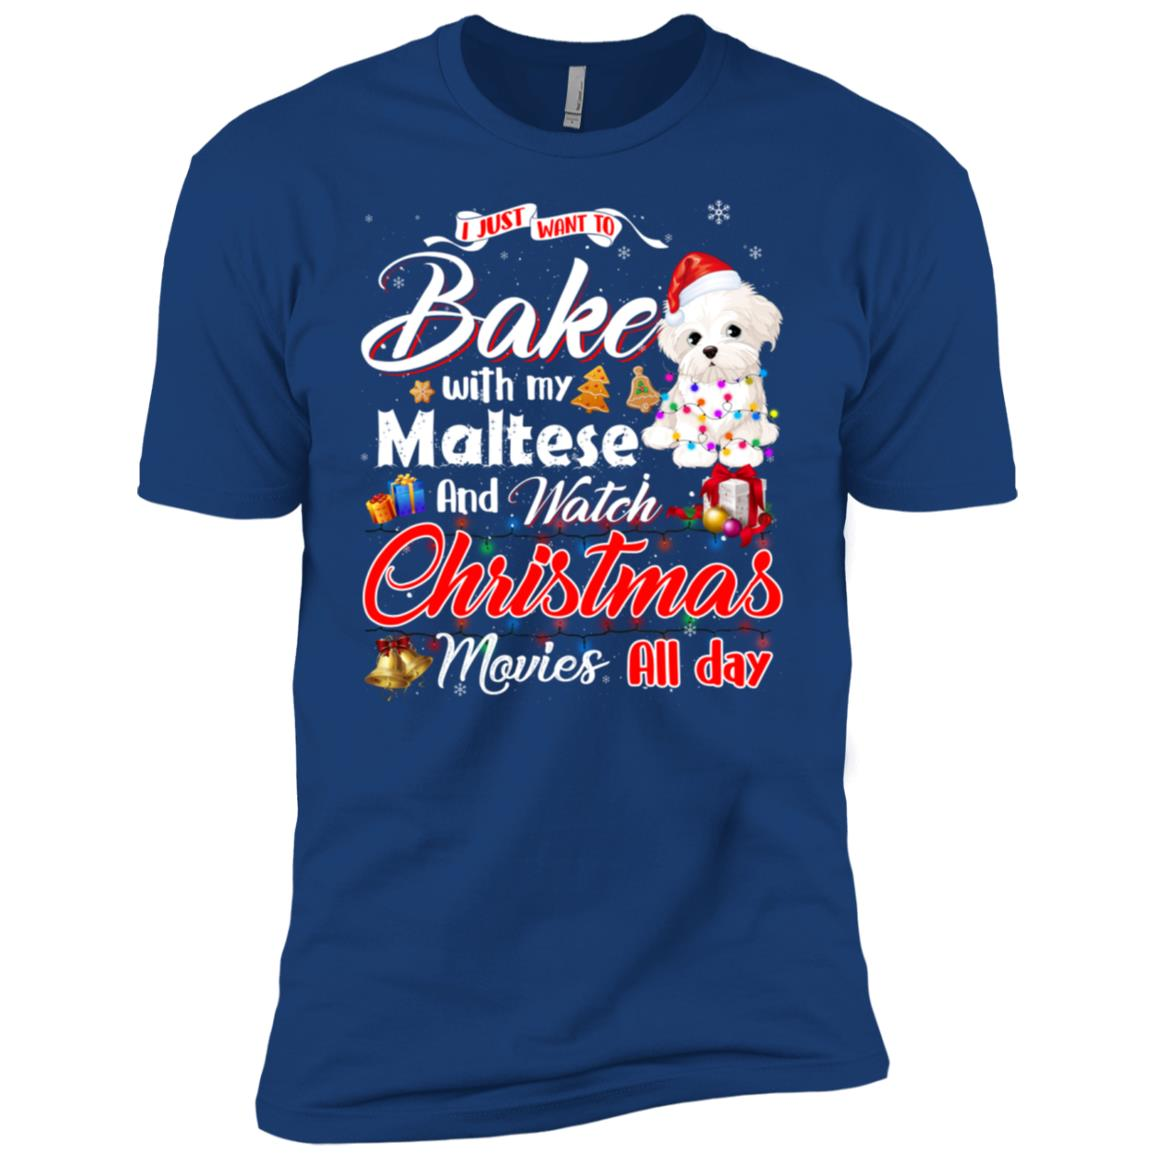 Bake Stuff with Maltese Watch Christmas Movies Men Short Sleeve T-Shirt